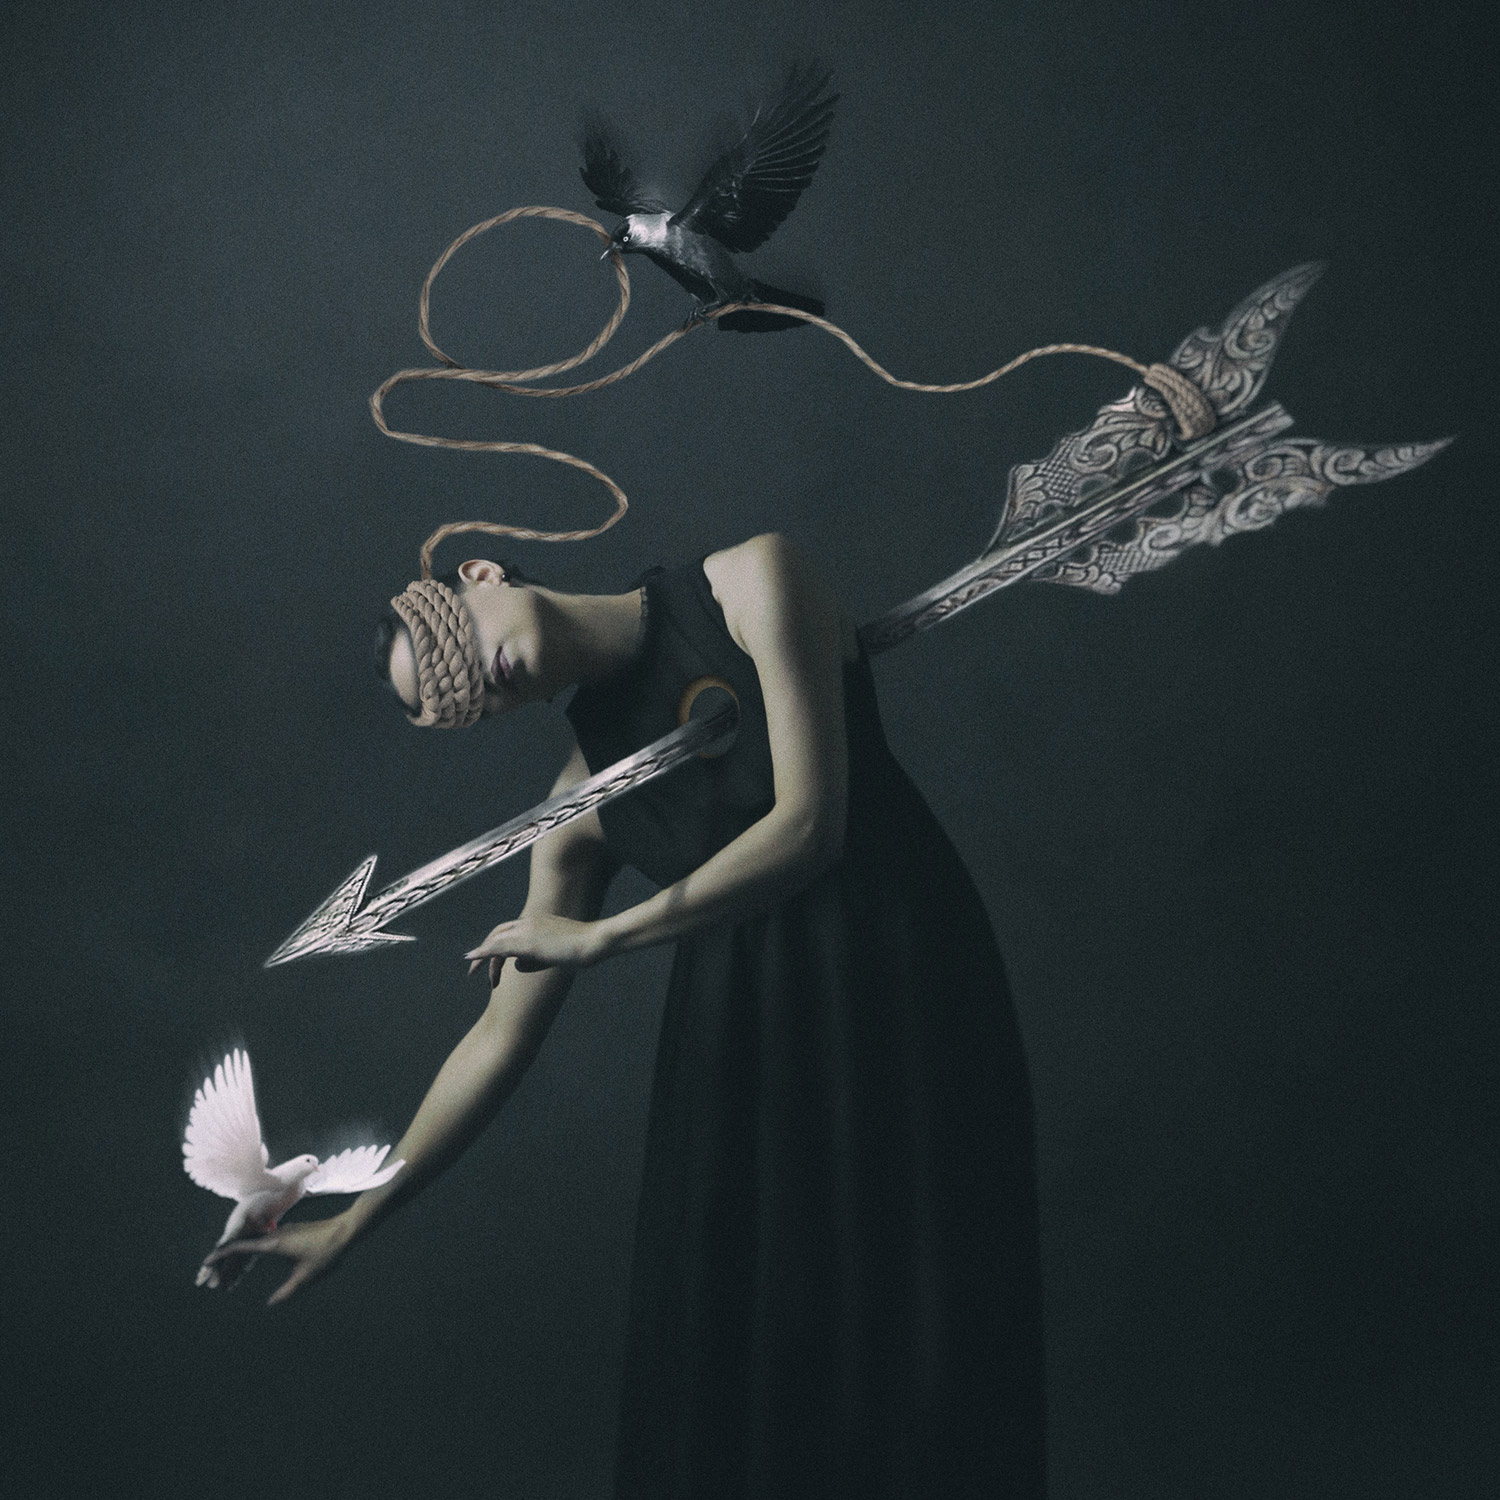 Josephine Cardin - Cupids arrow